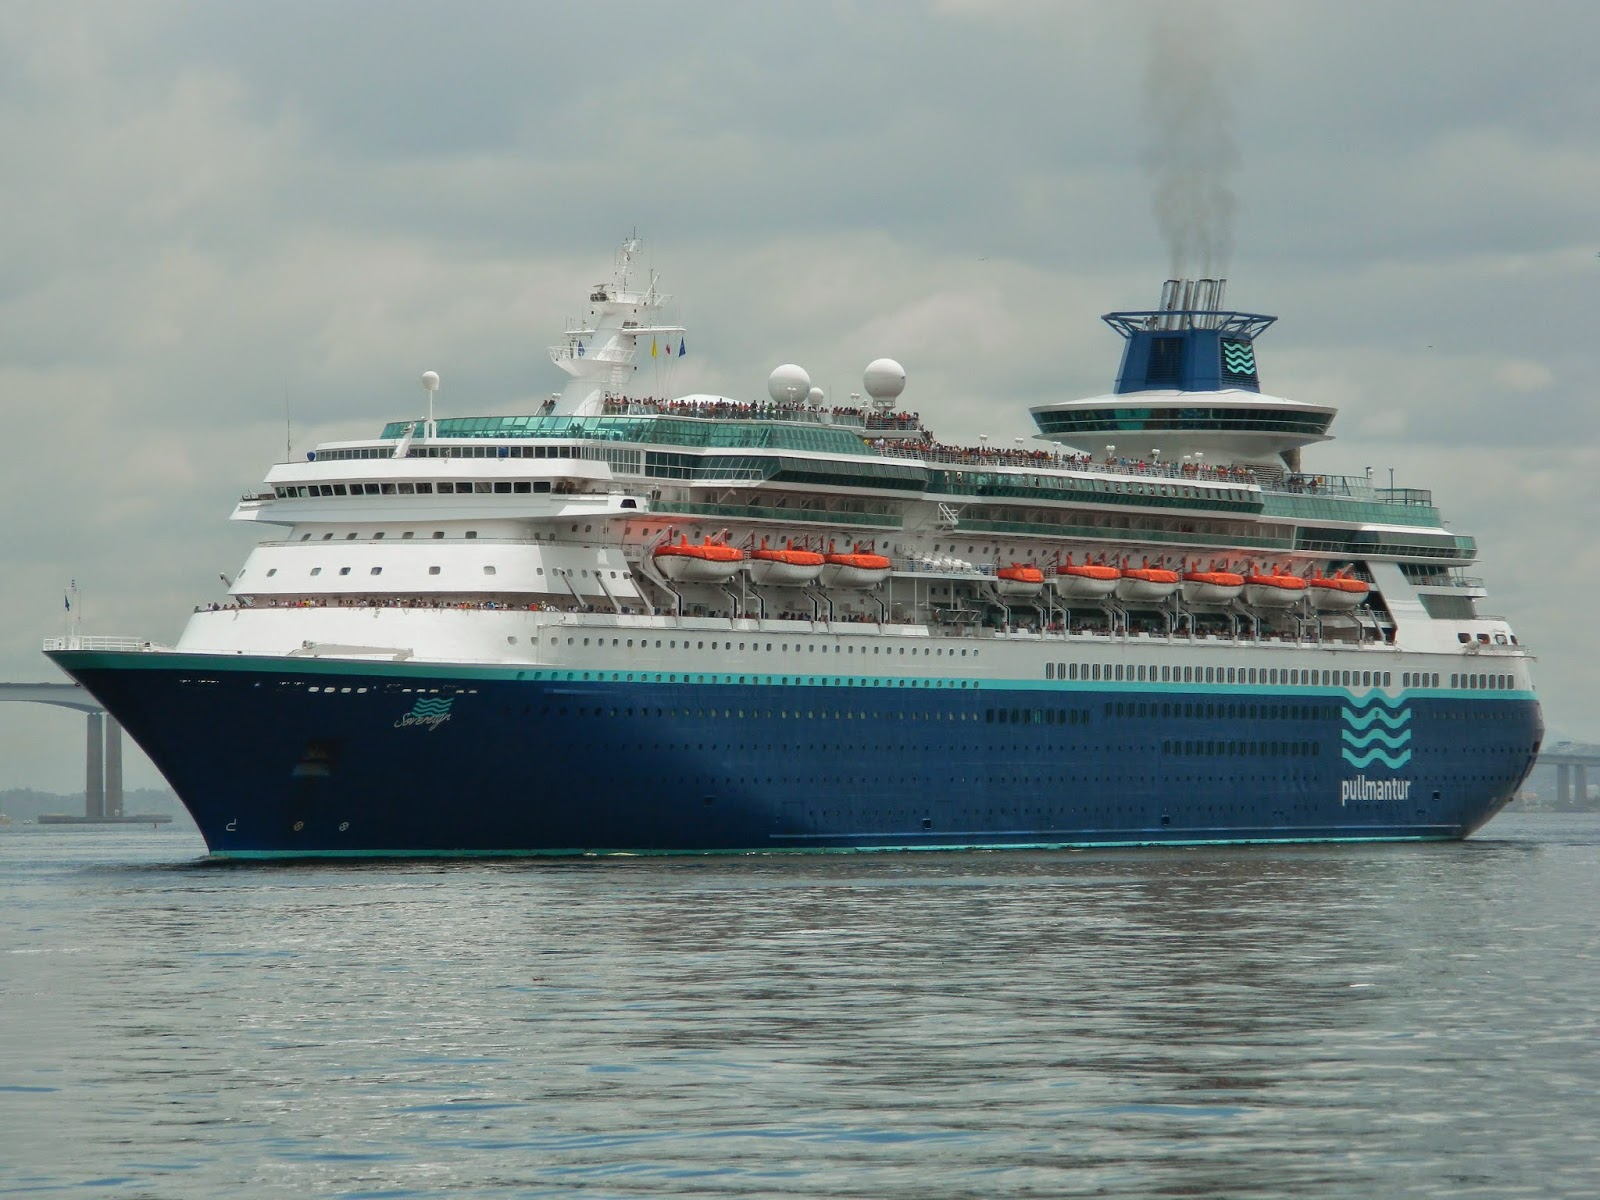 Oferta exclusiva SOVEREIGN DE PULLMANTUR